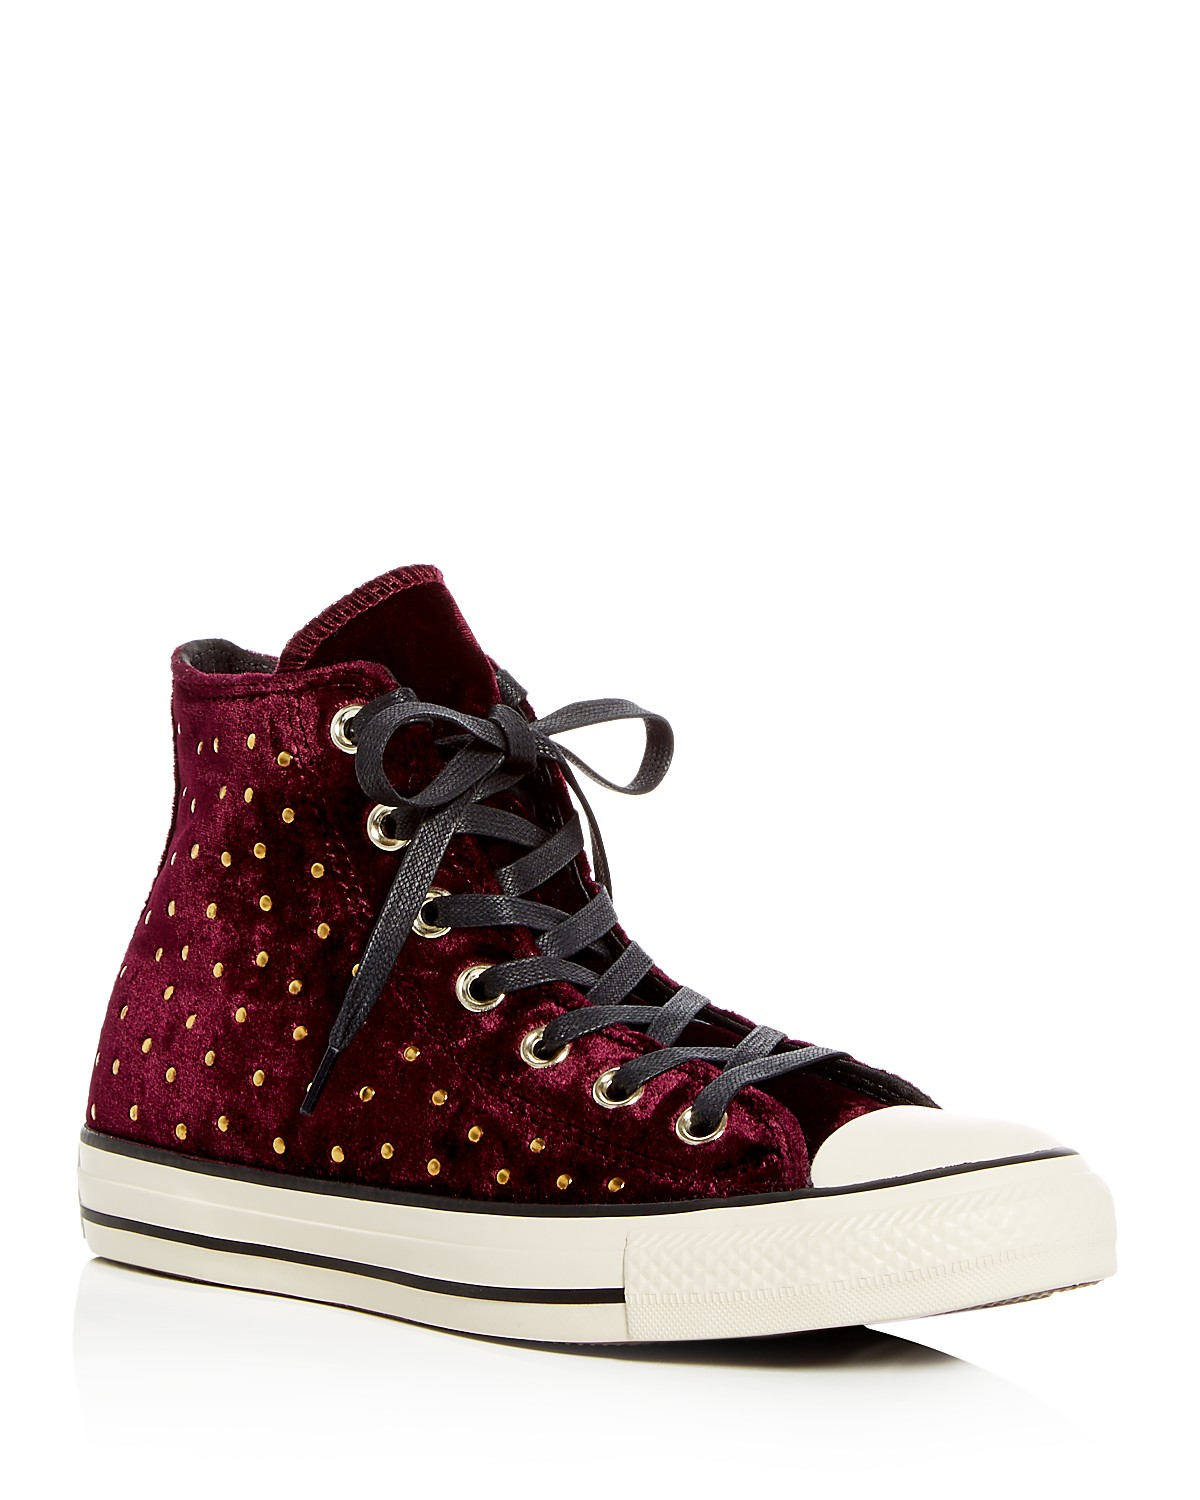 Converse Women's Chuck Taylor Embellished Velvet High Top Sneakers rmPRSWpDvl